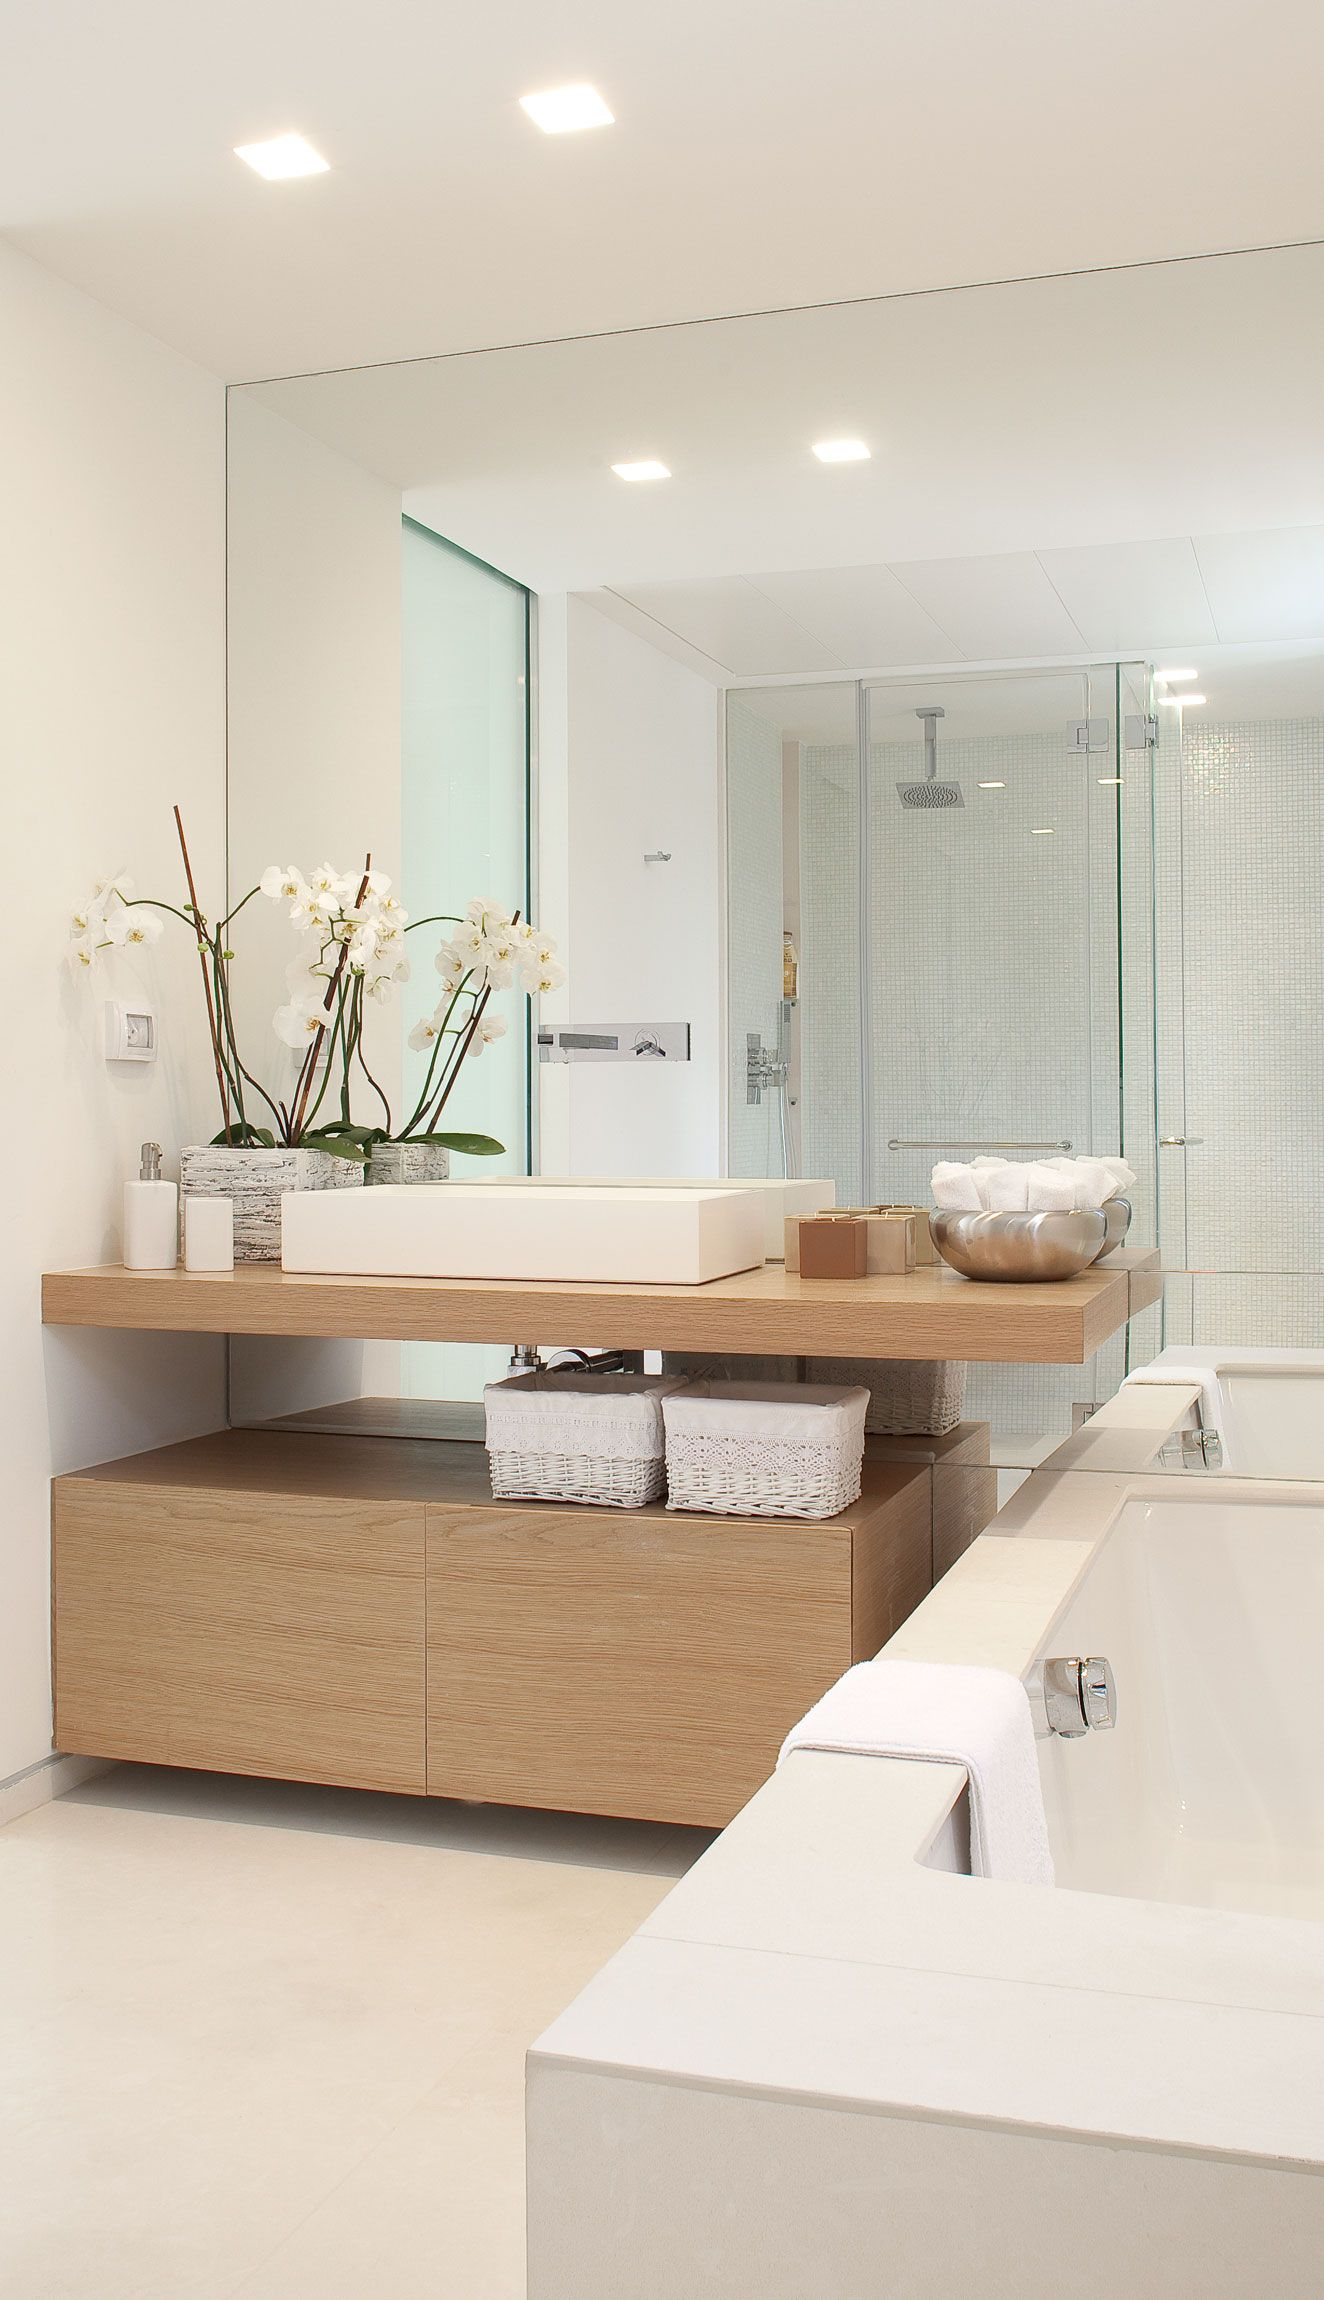 17 Best images about Bany on Pinterest   Toilets  Madeira and Shower doors. 17 Best images about Bany on Pinterest   Toilets  Madeira and